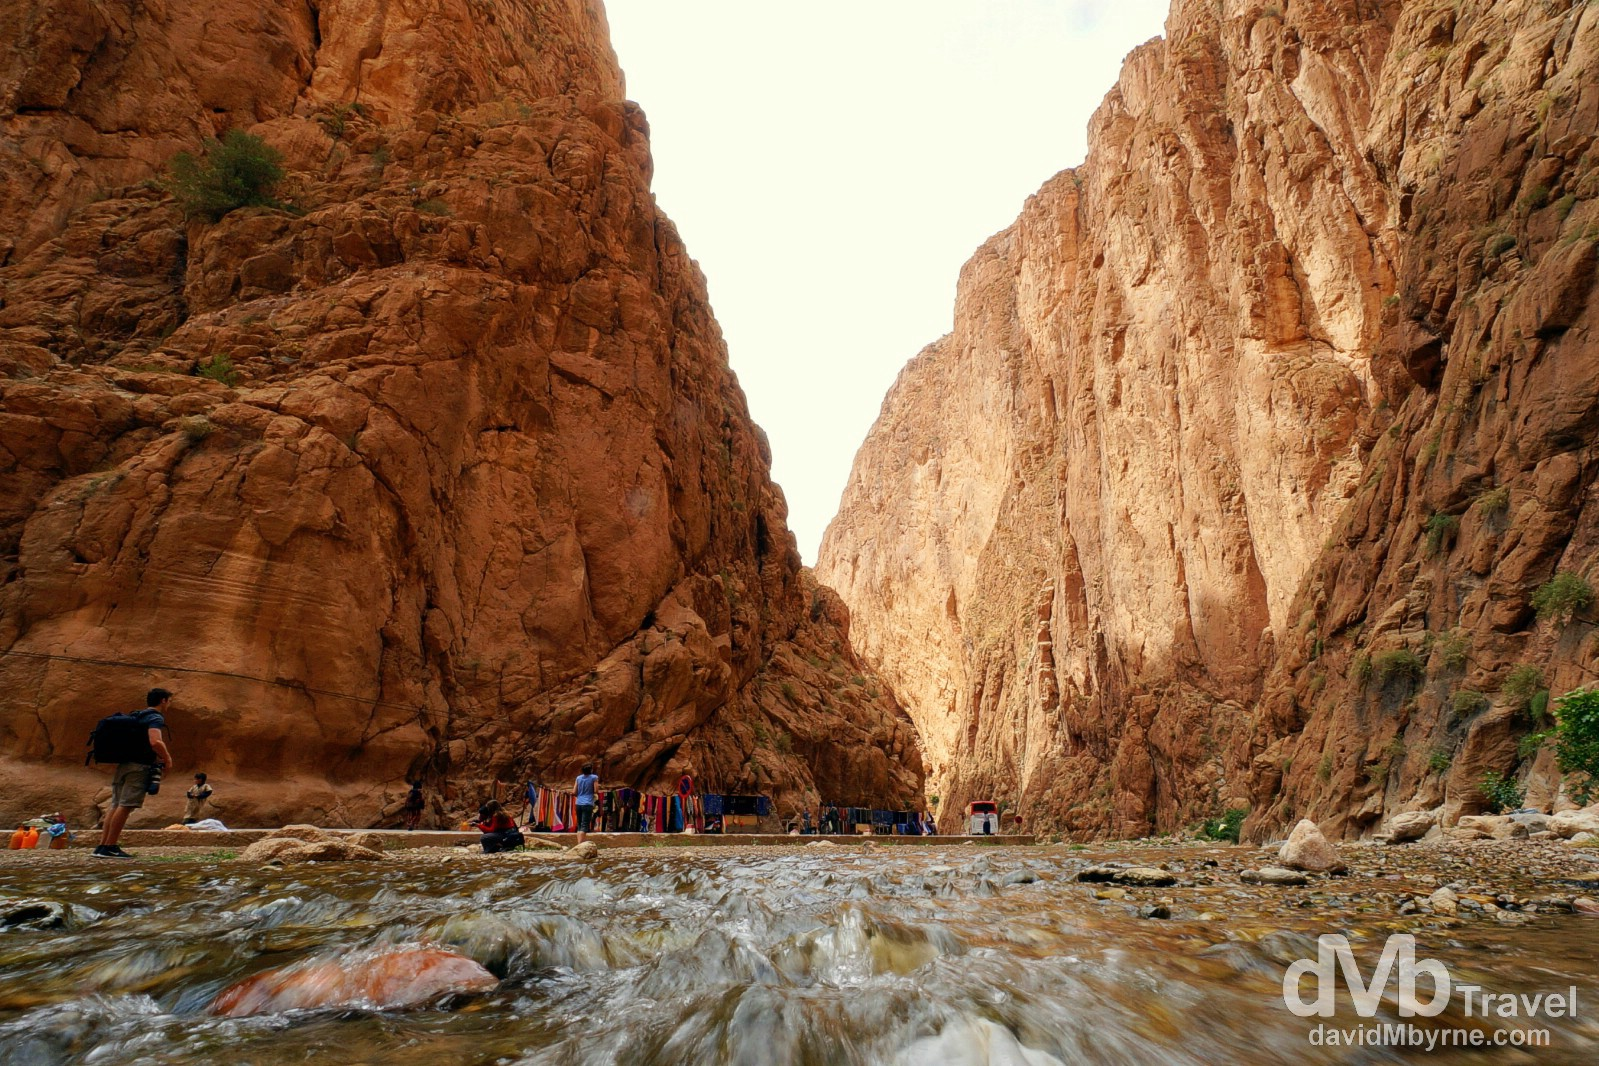 Todra Gorge, Morocco. May 16th, 2014.